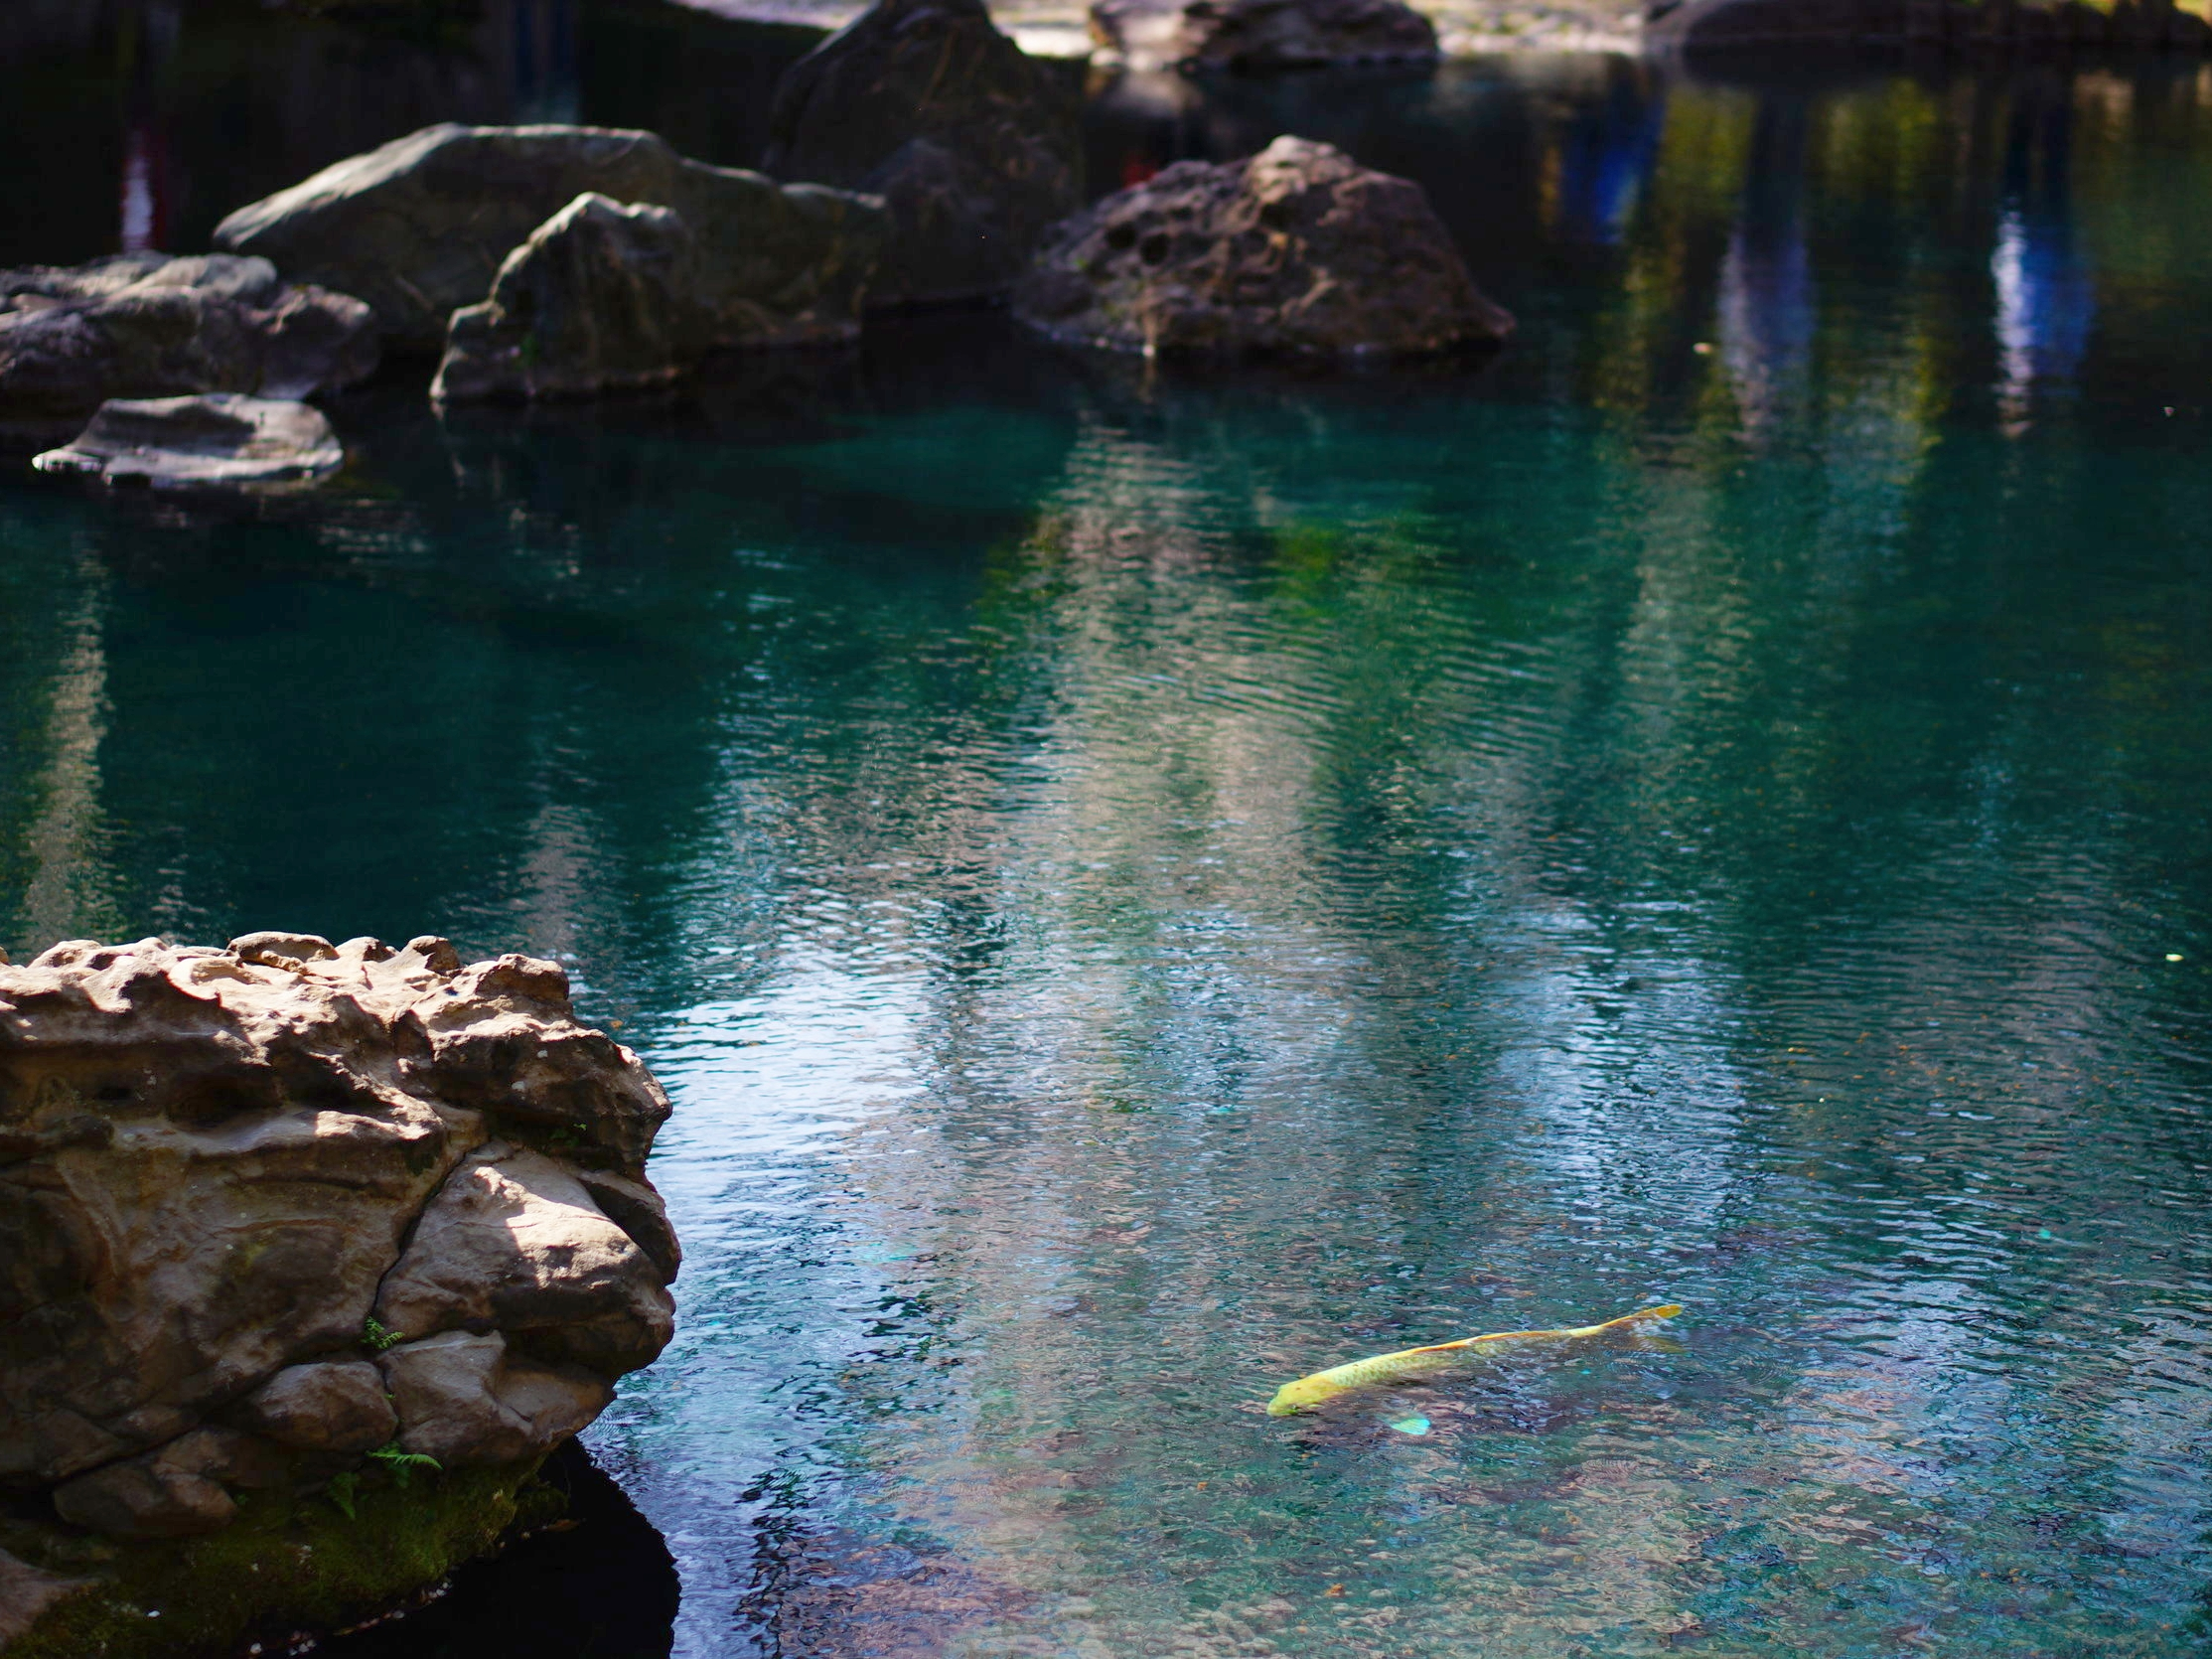 A gold colored koi clearly visible in a pond at a temple in Tokyo. ©TOKI